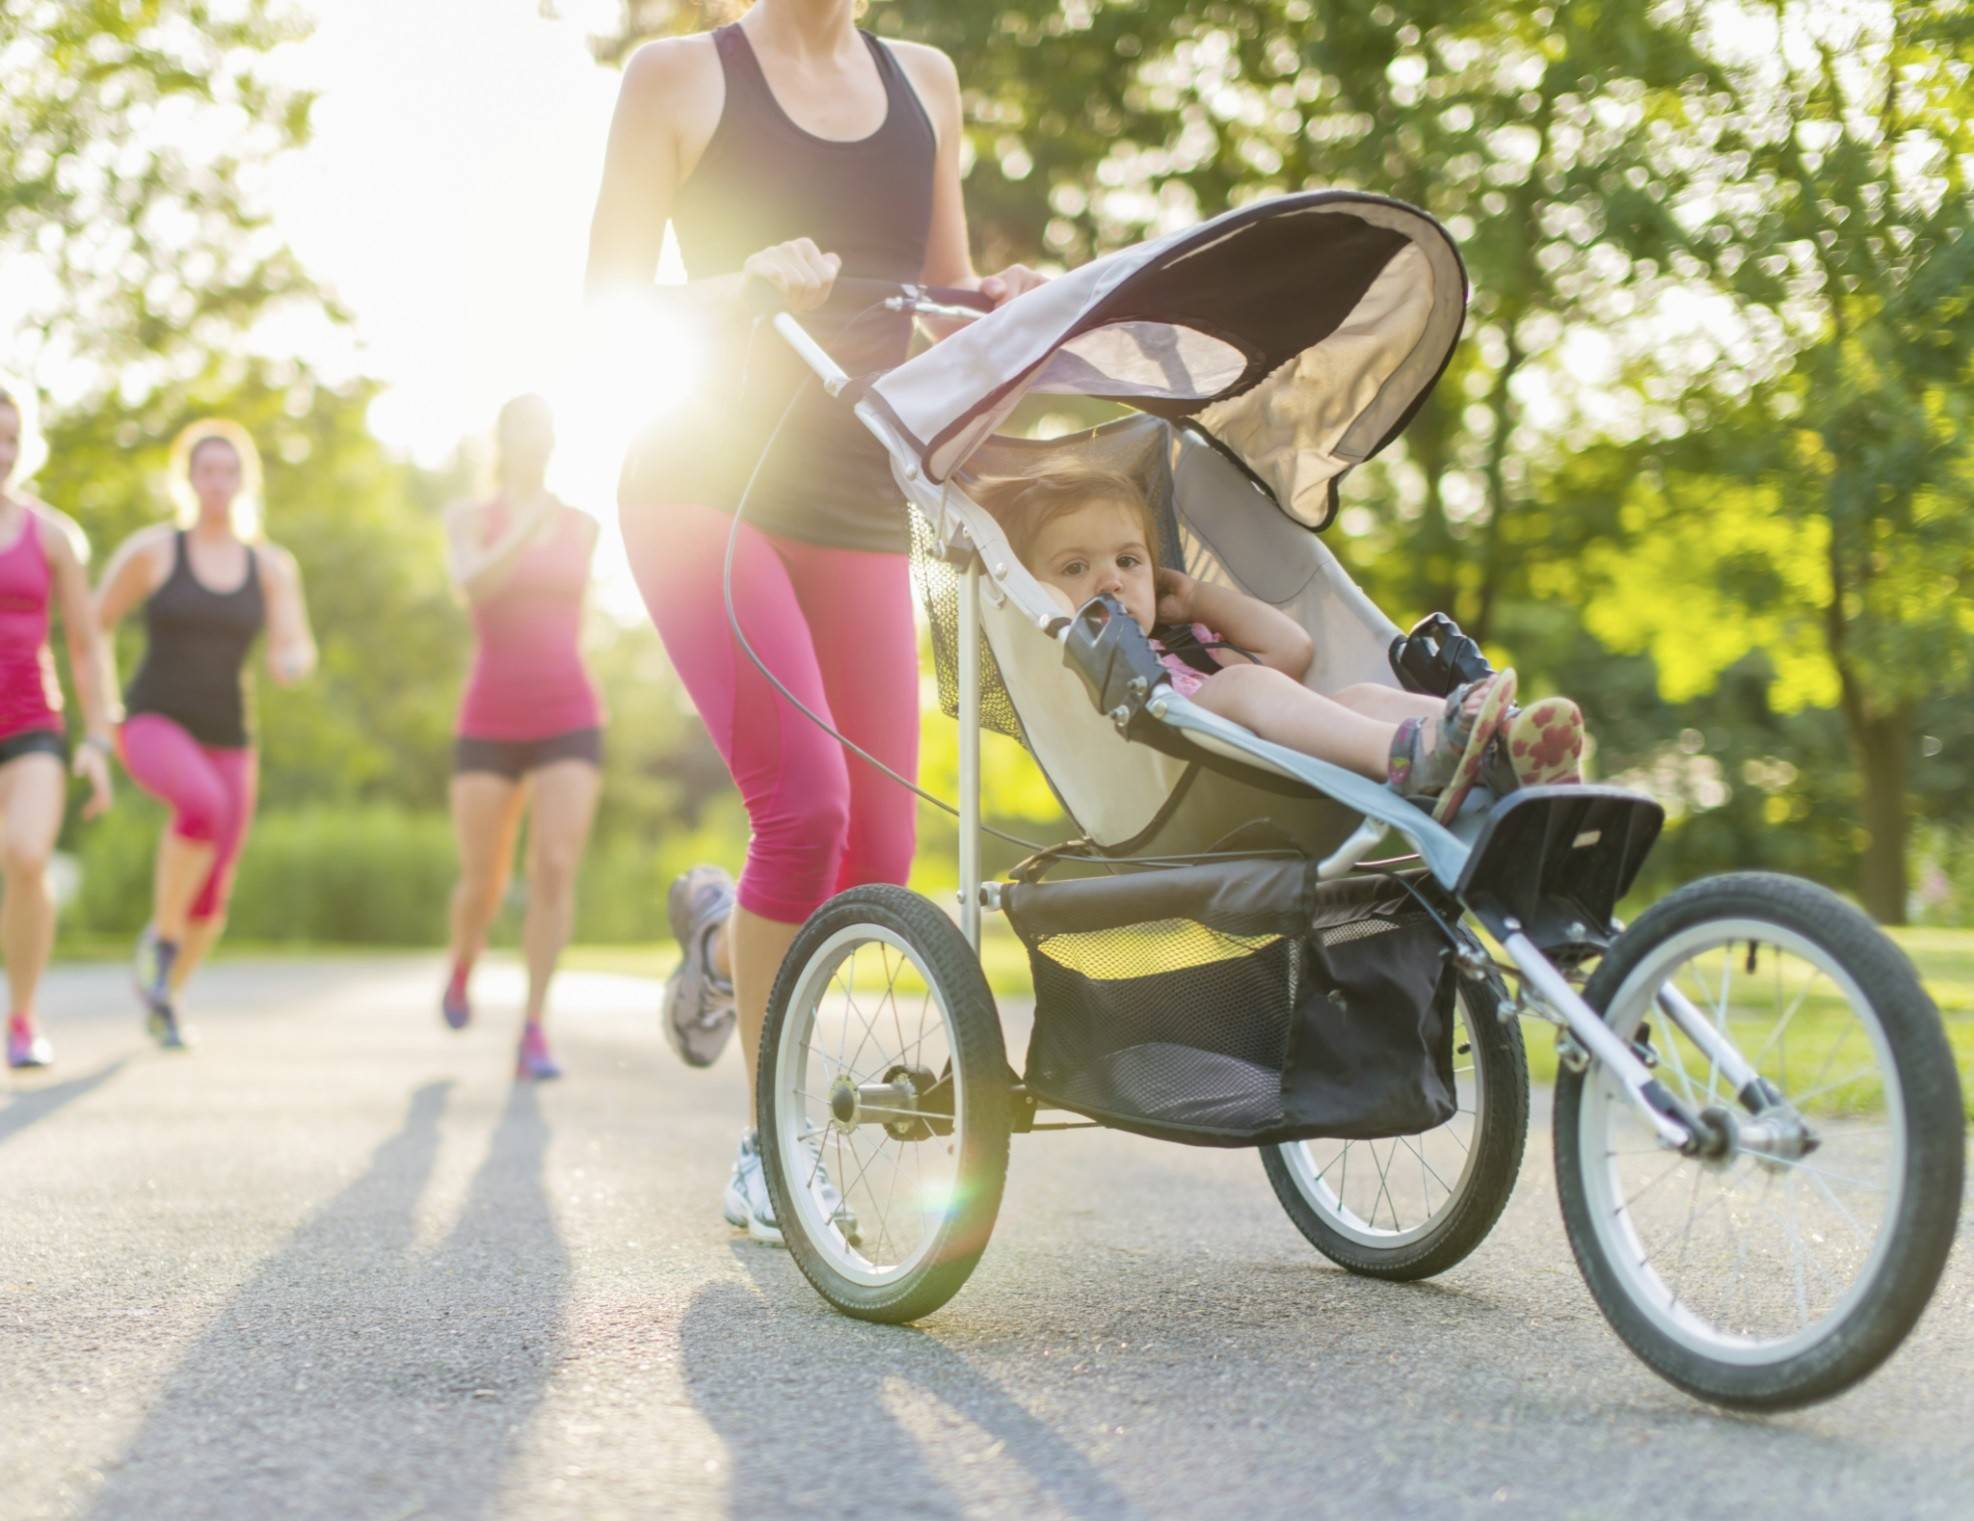 Defying hectic schedules: Busy moms still gotta run